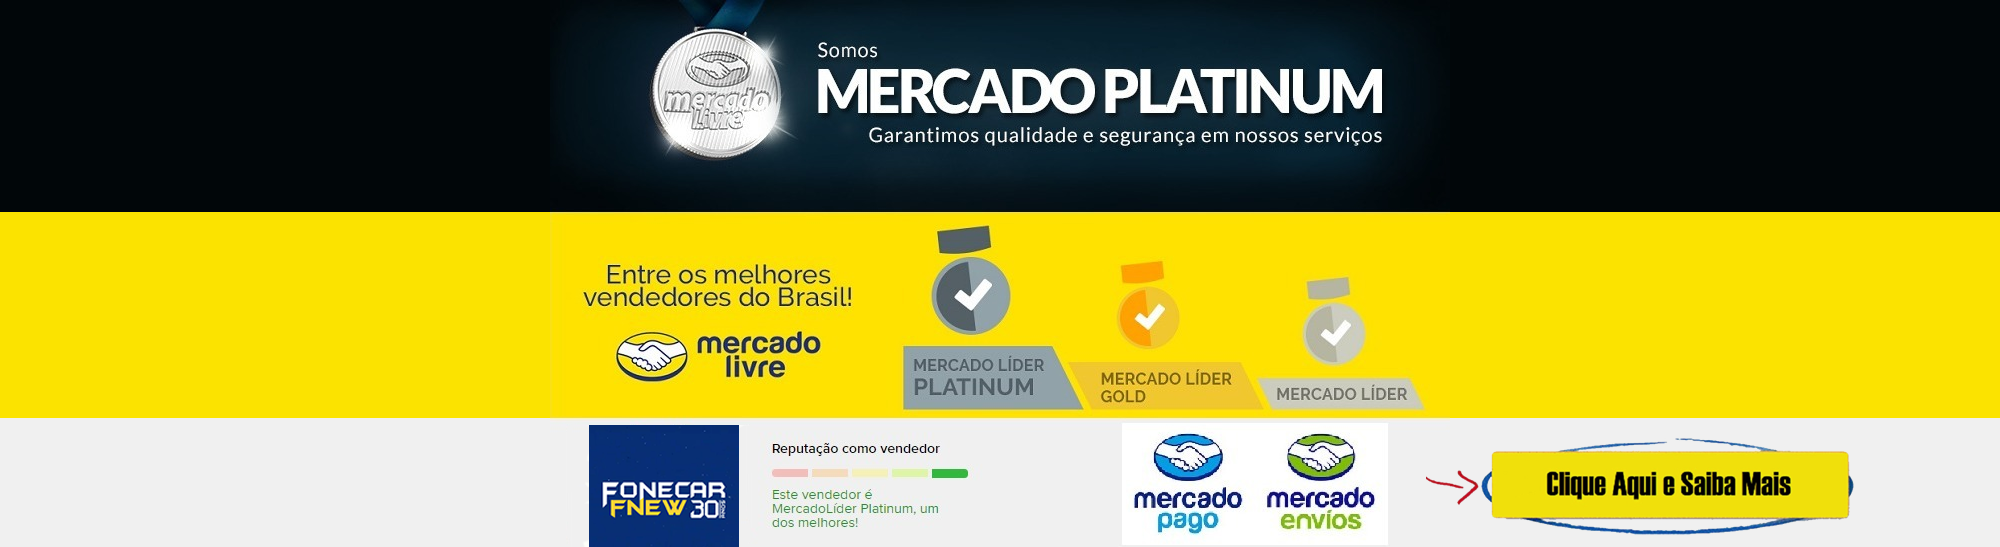 Mercado Platinum